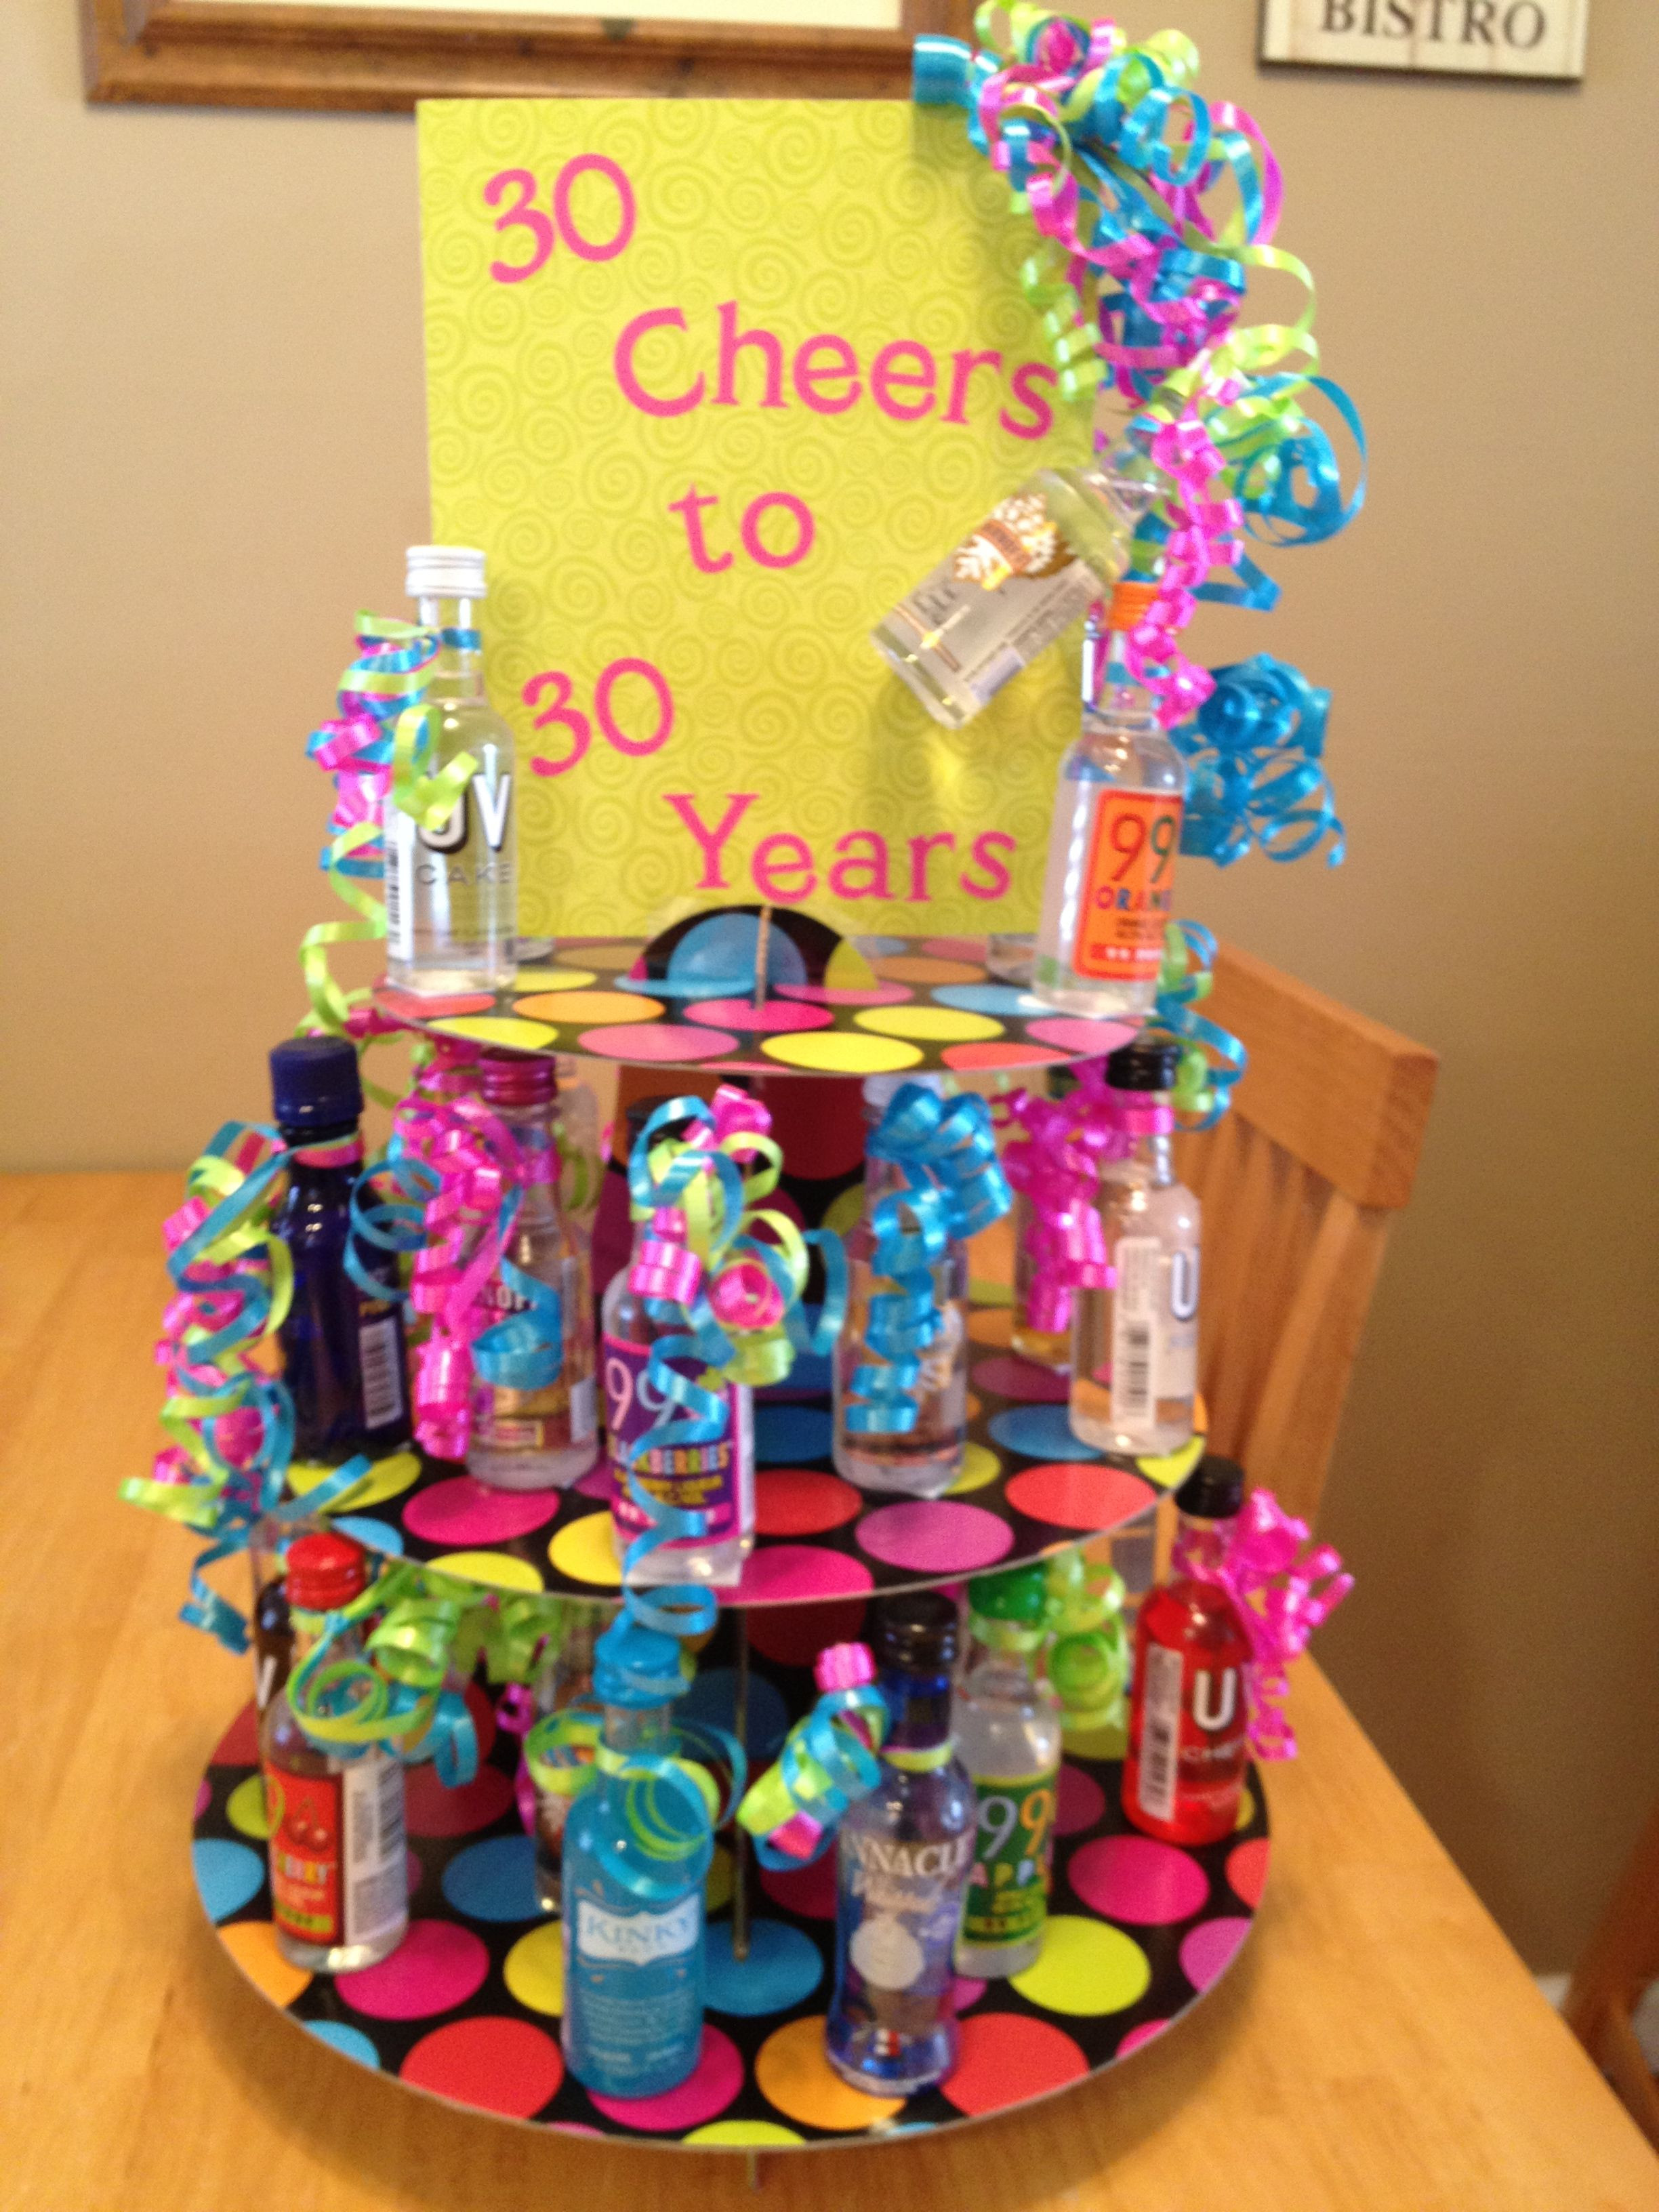 30 Gifts For 30Th Birthday For Her  30 Cheers to 30 Years 30th Birthday t